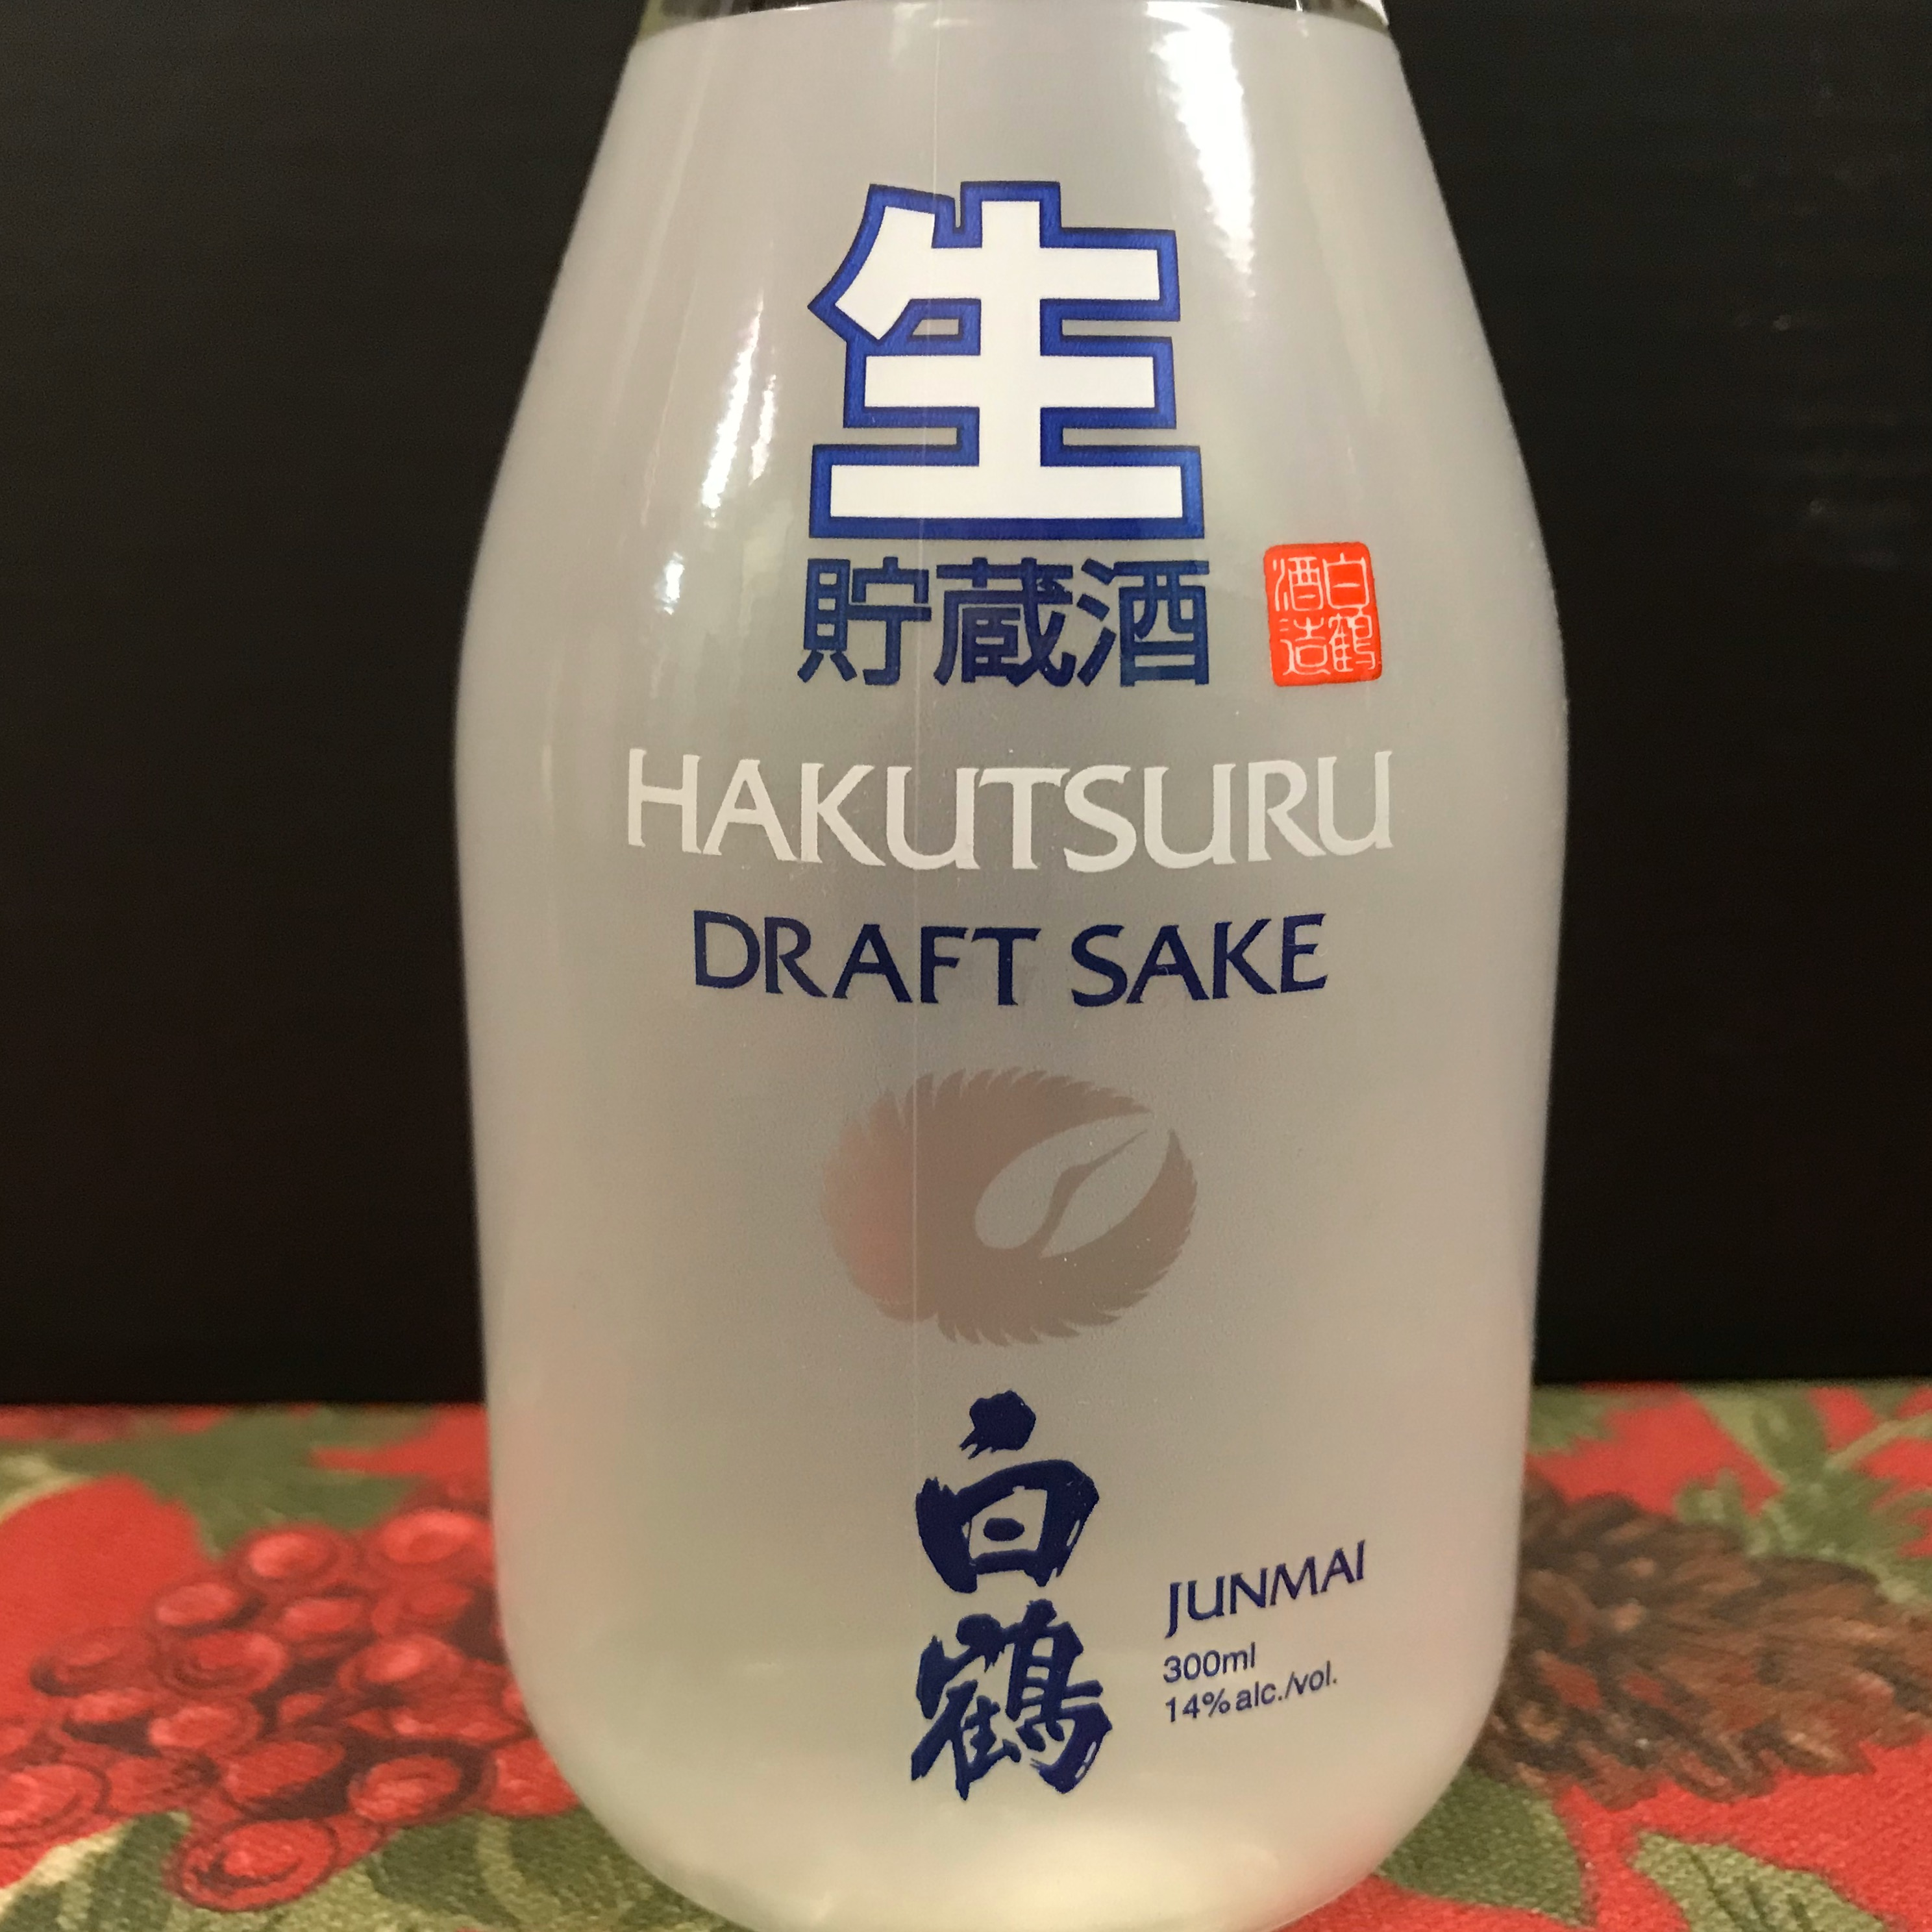 Hakutsuru Draft Sake Junmai 300ml